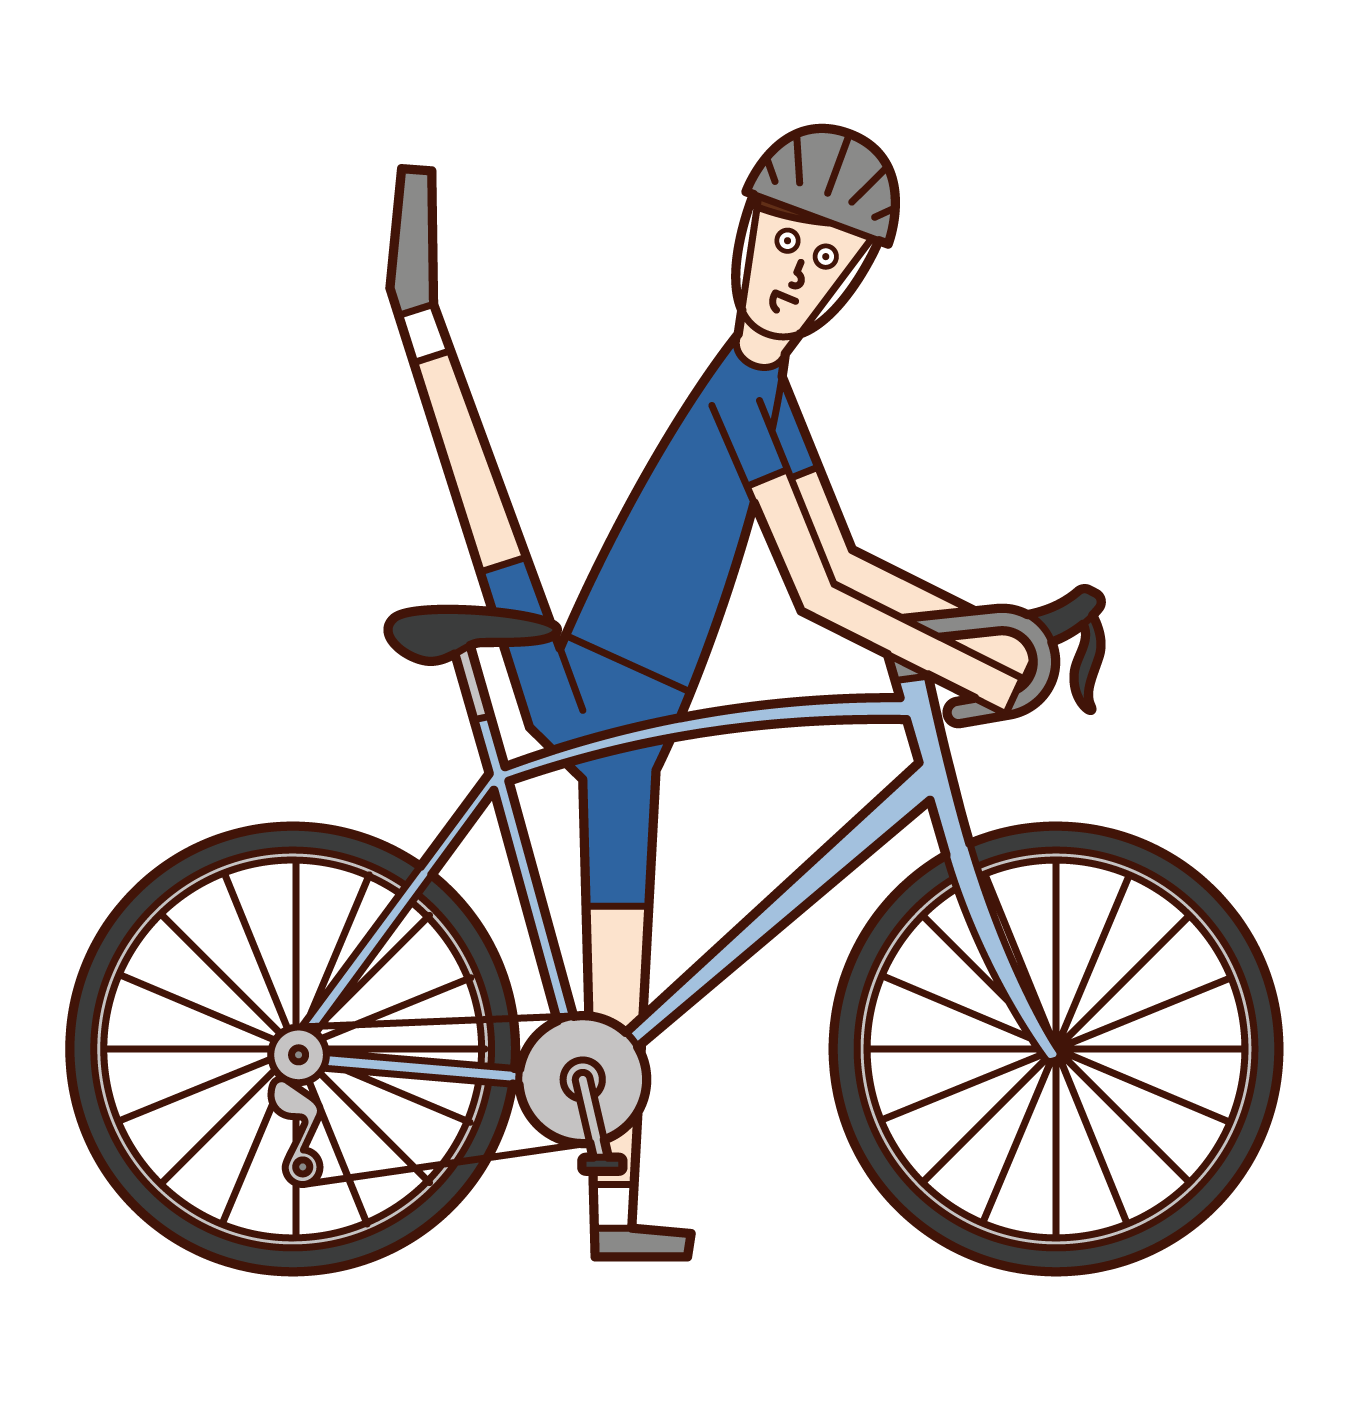 Illustration of a man riding a bicycle with his legs high